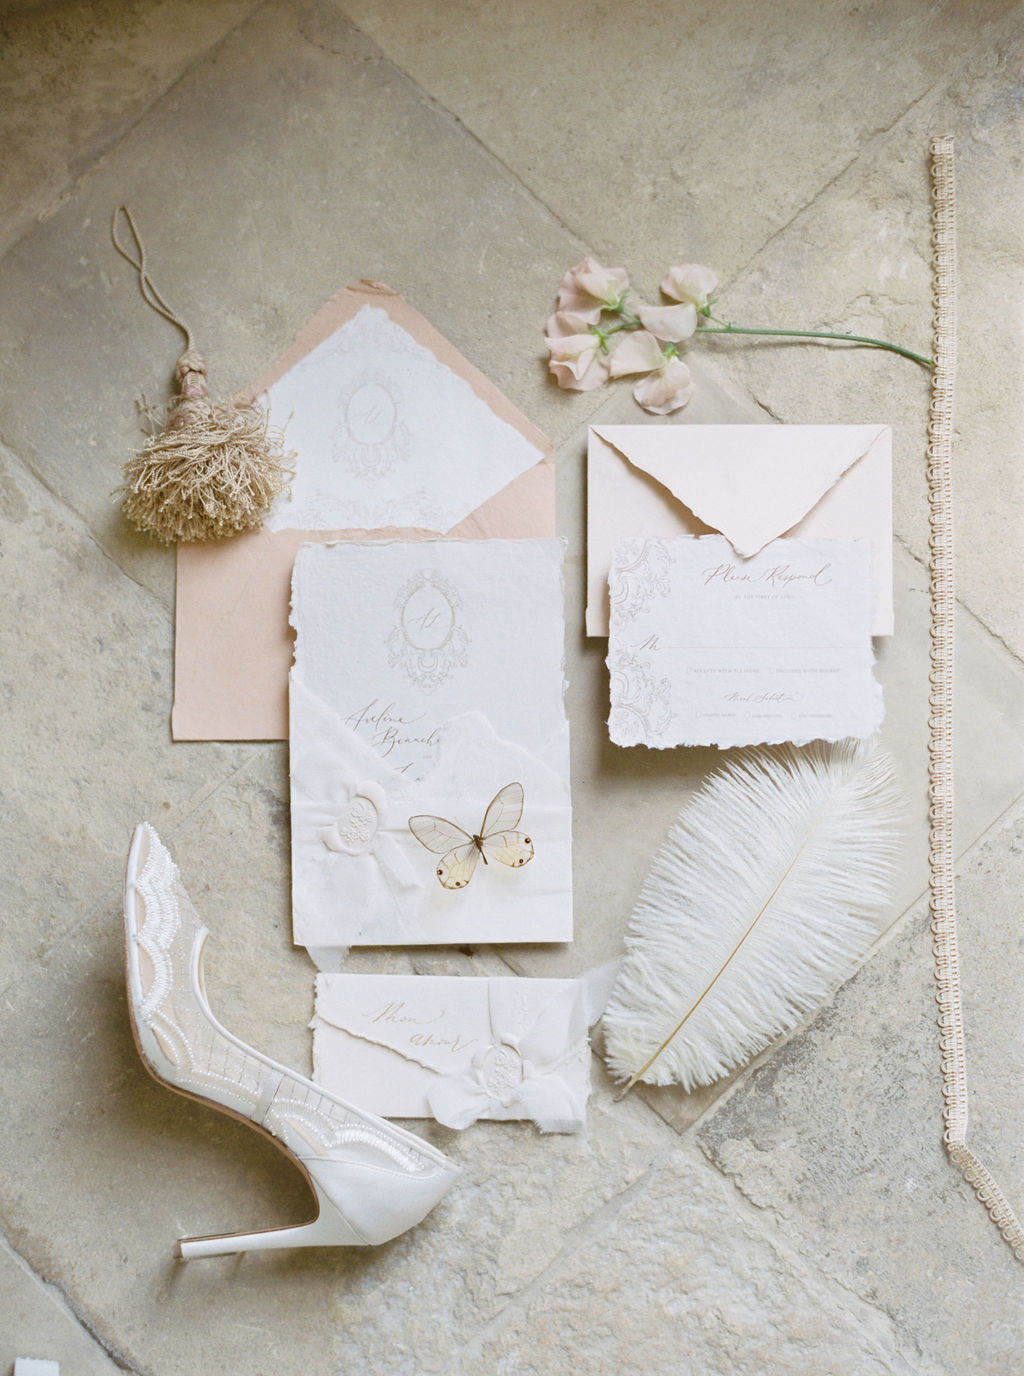 travellur_photoshoot__elegance_Jardin_de_Chateau_de_Villette_wedding_stationary_bridal_shoes_bella_belle.jpg